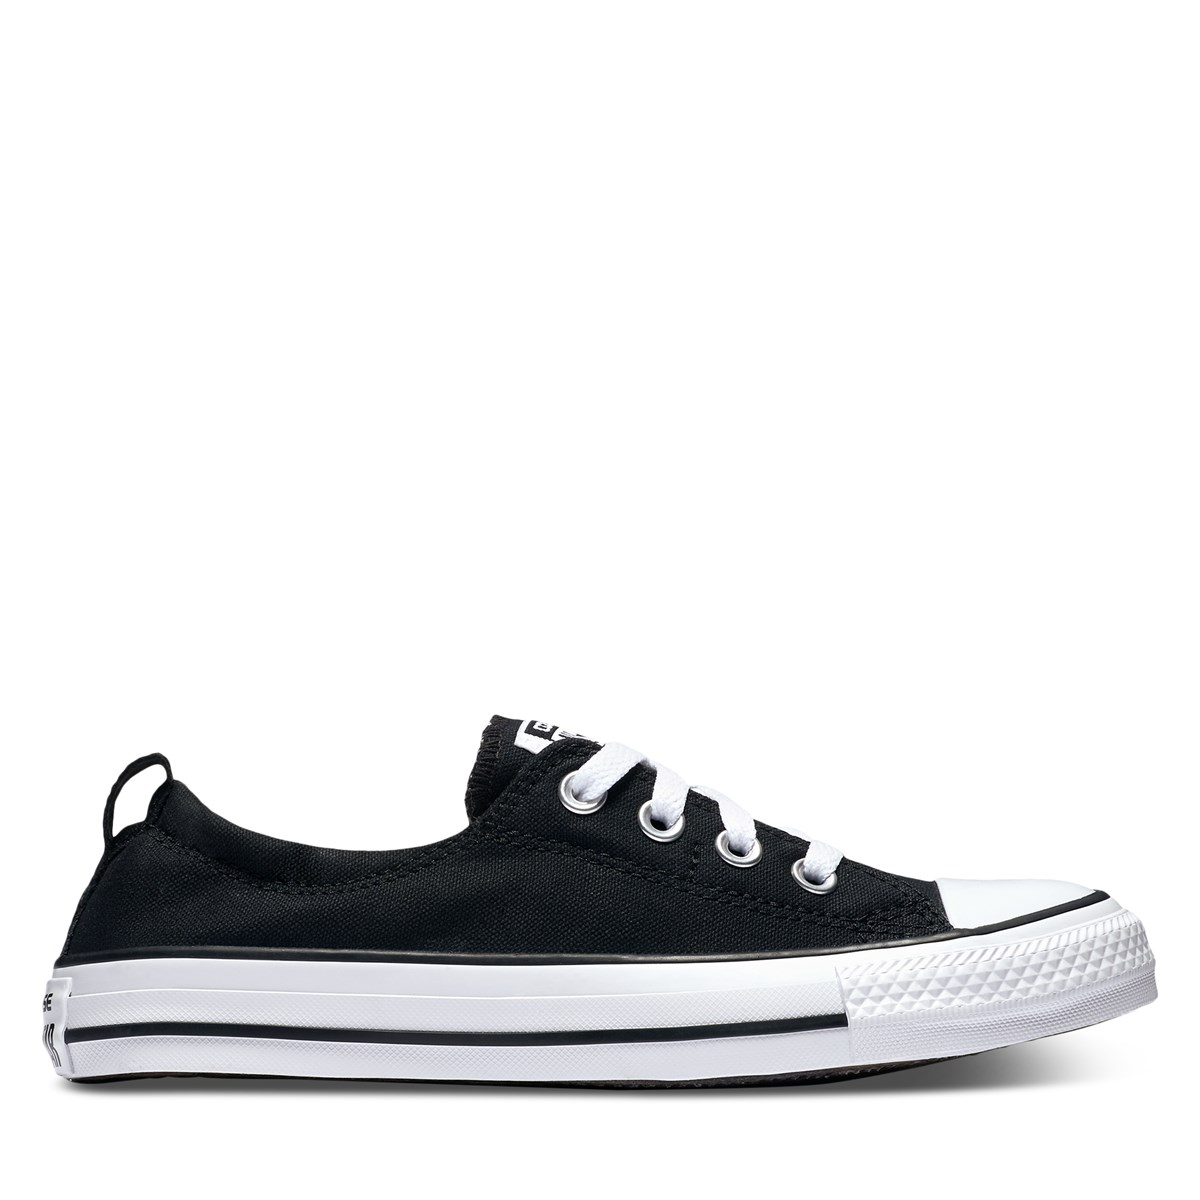 Women's Chuck Taylor All Star Shoreline Slip-Ons in Black